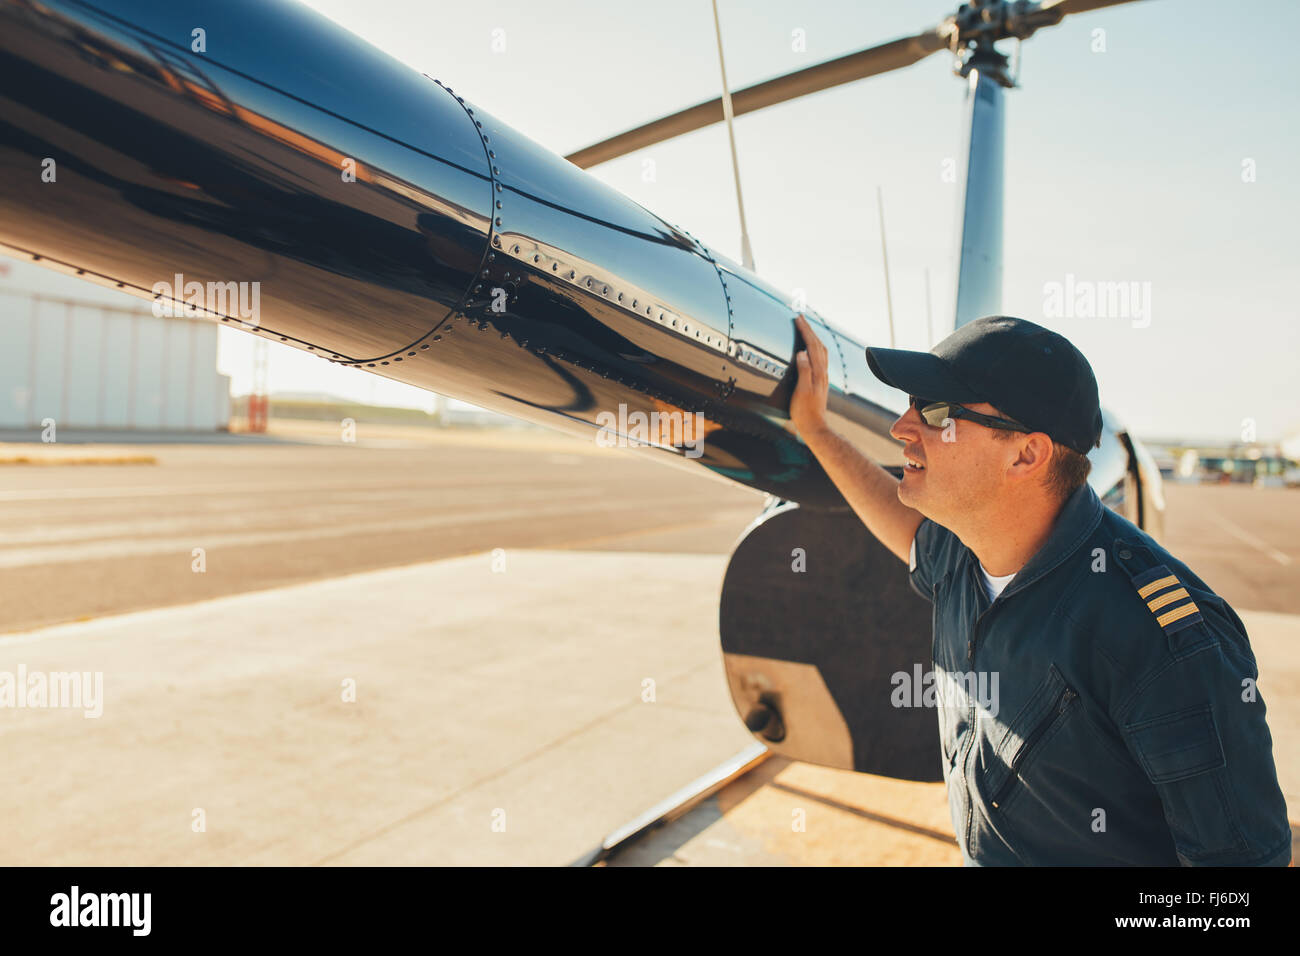 Male pilot checks the tail of helicopter before the flight. Mechanic checking helicopter before take off. - Stock Image